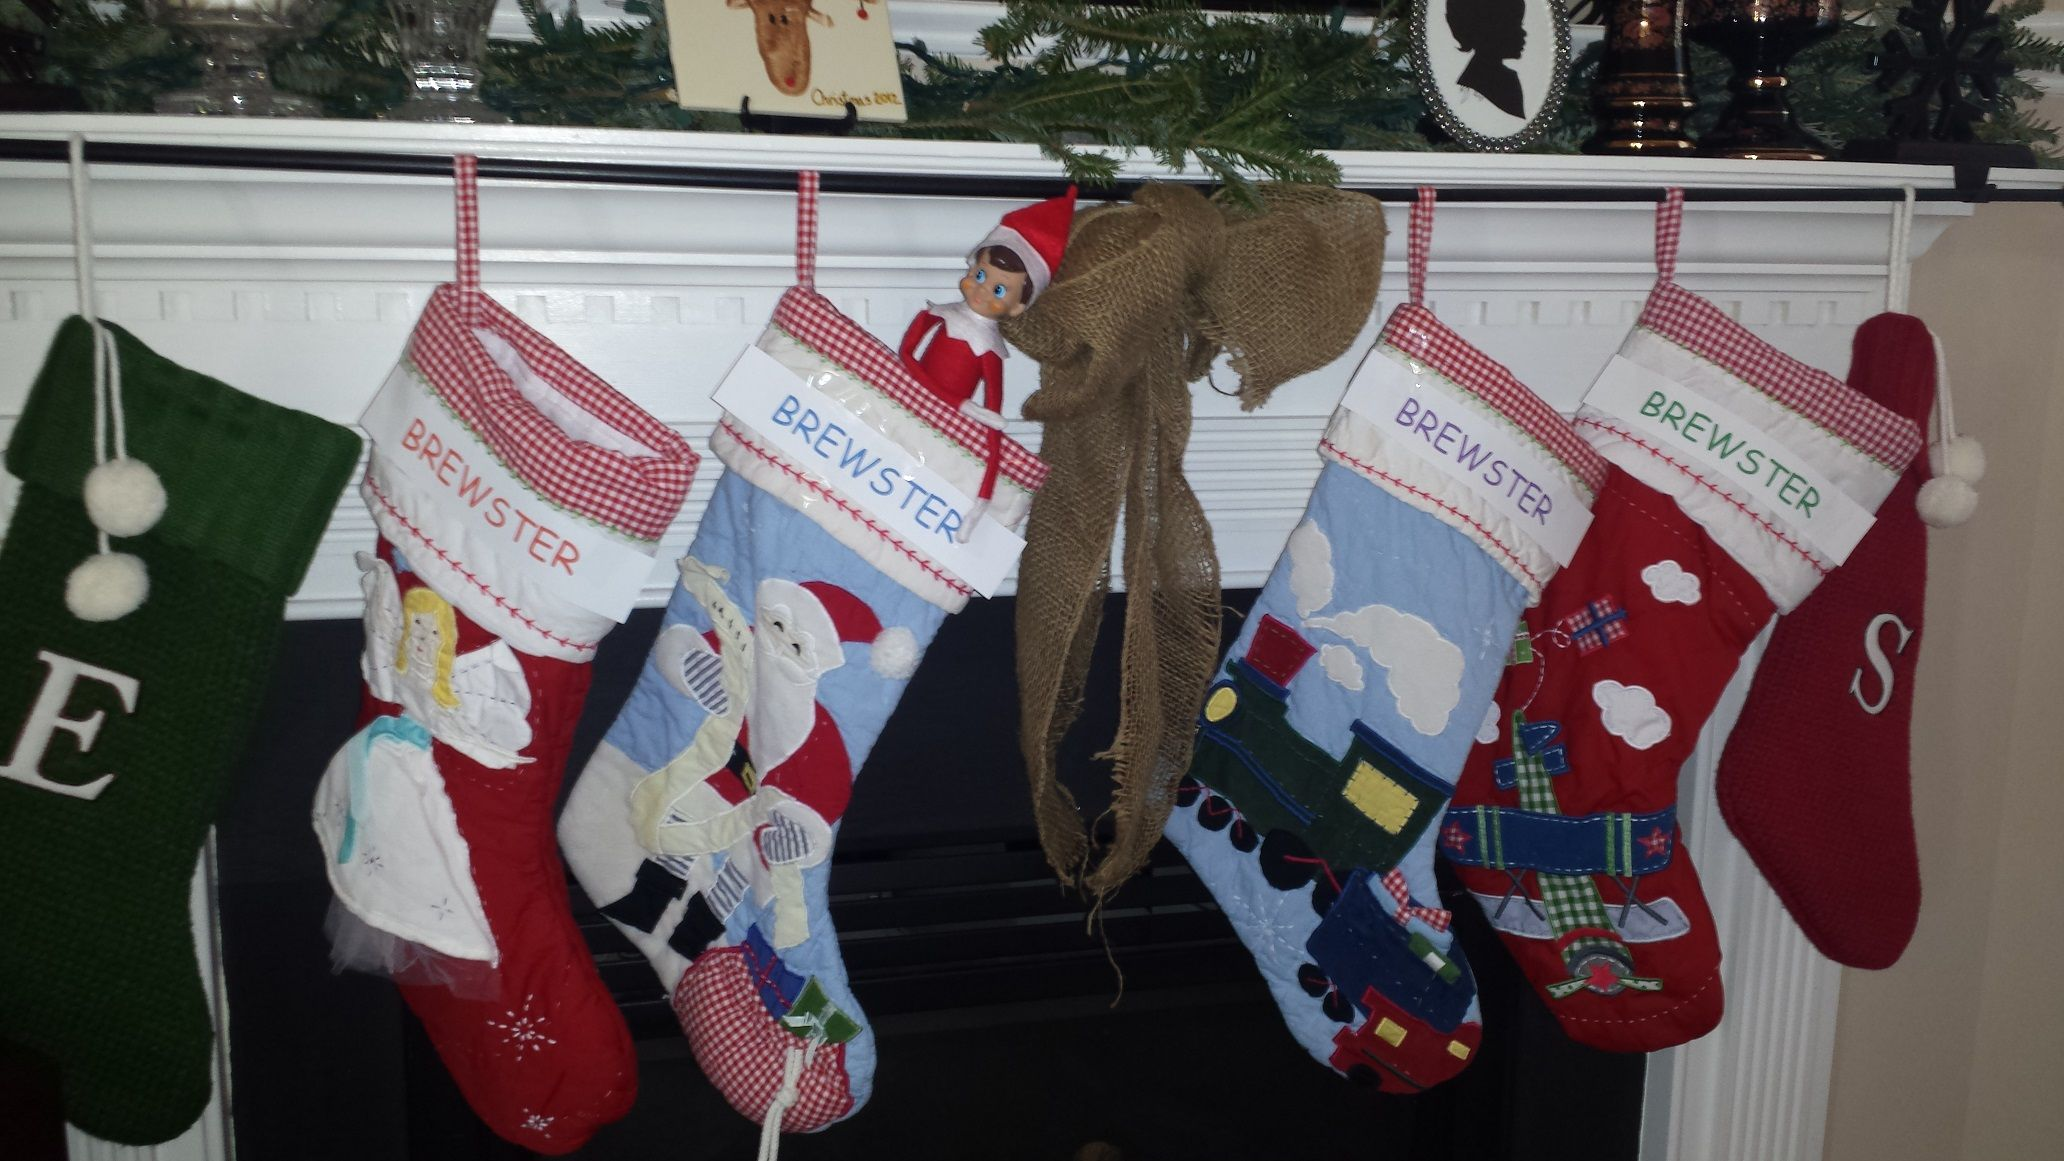 Change the names on the stockings to the elf's name